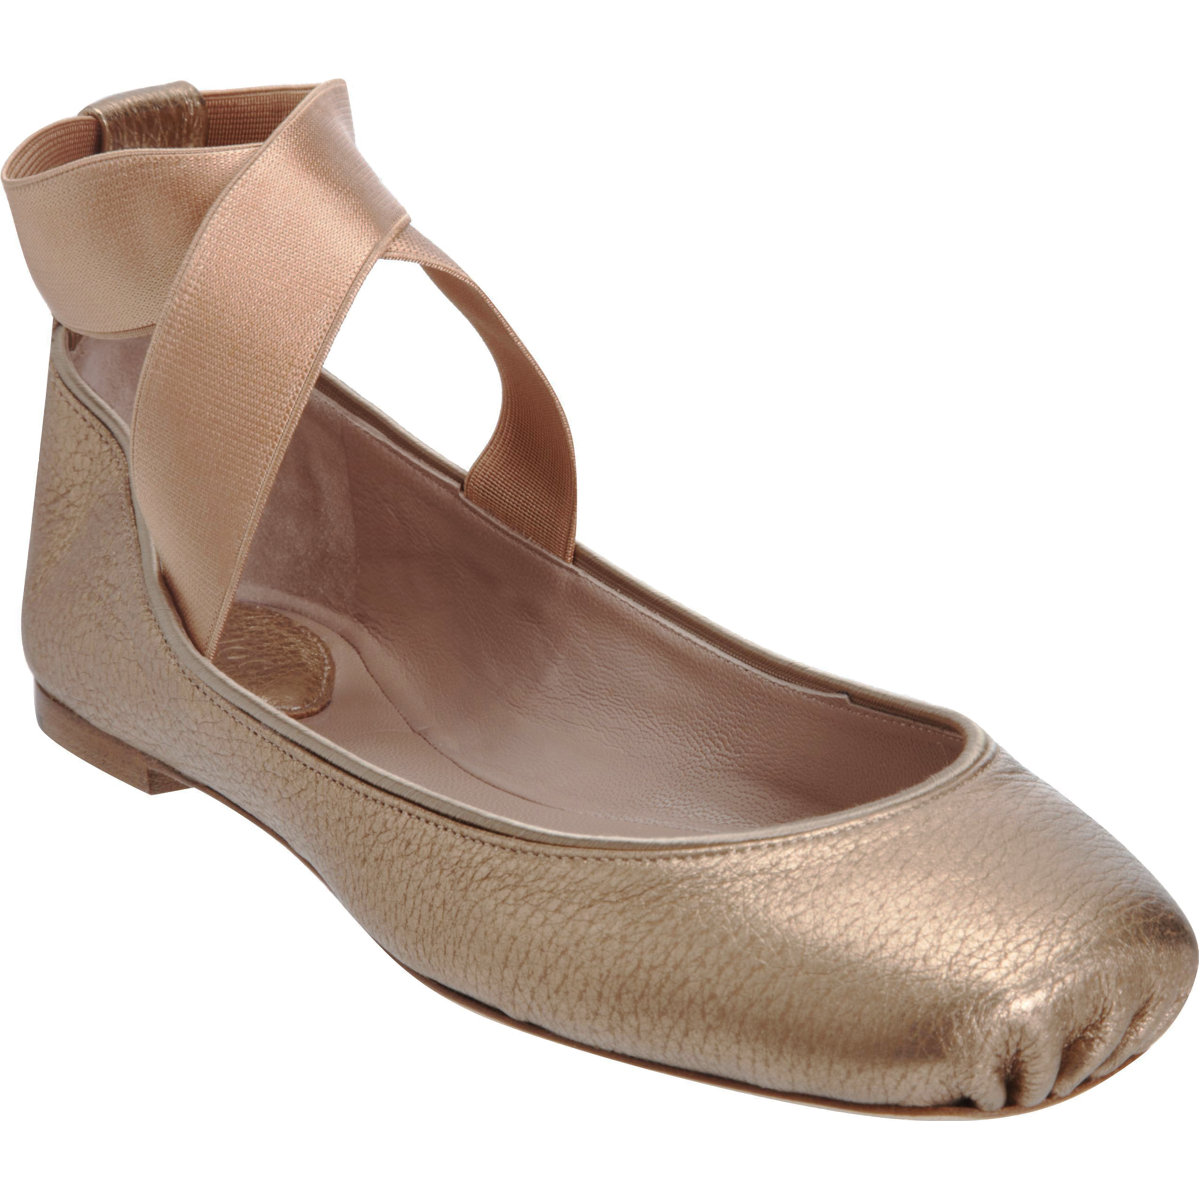 Chloé square toe ballerina flat at barneys.com